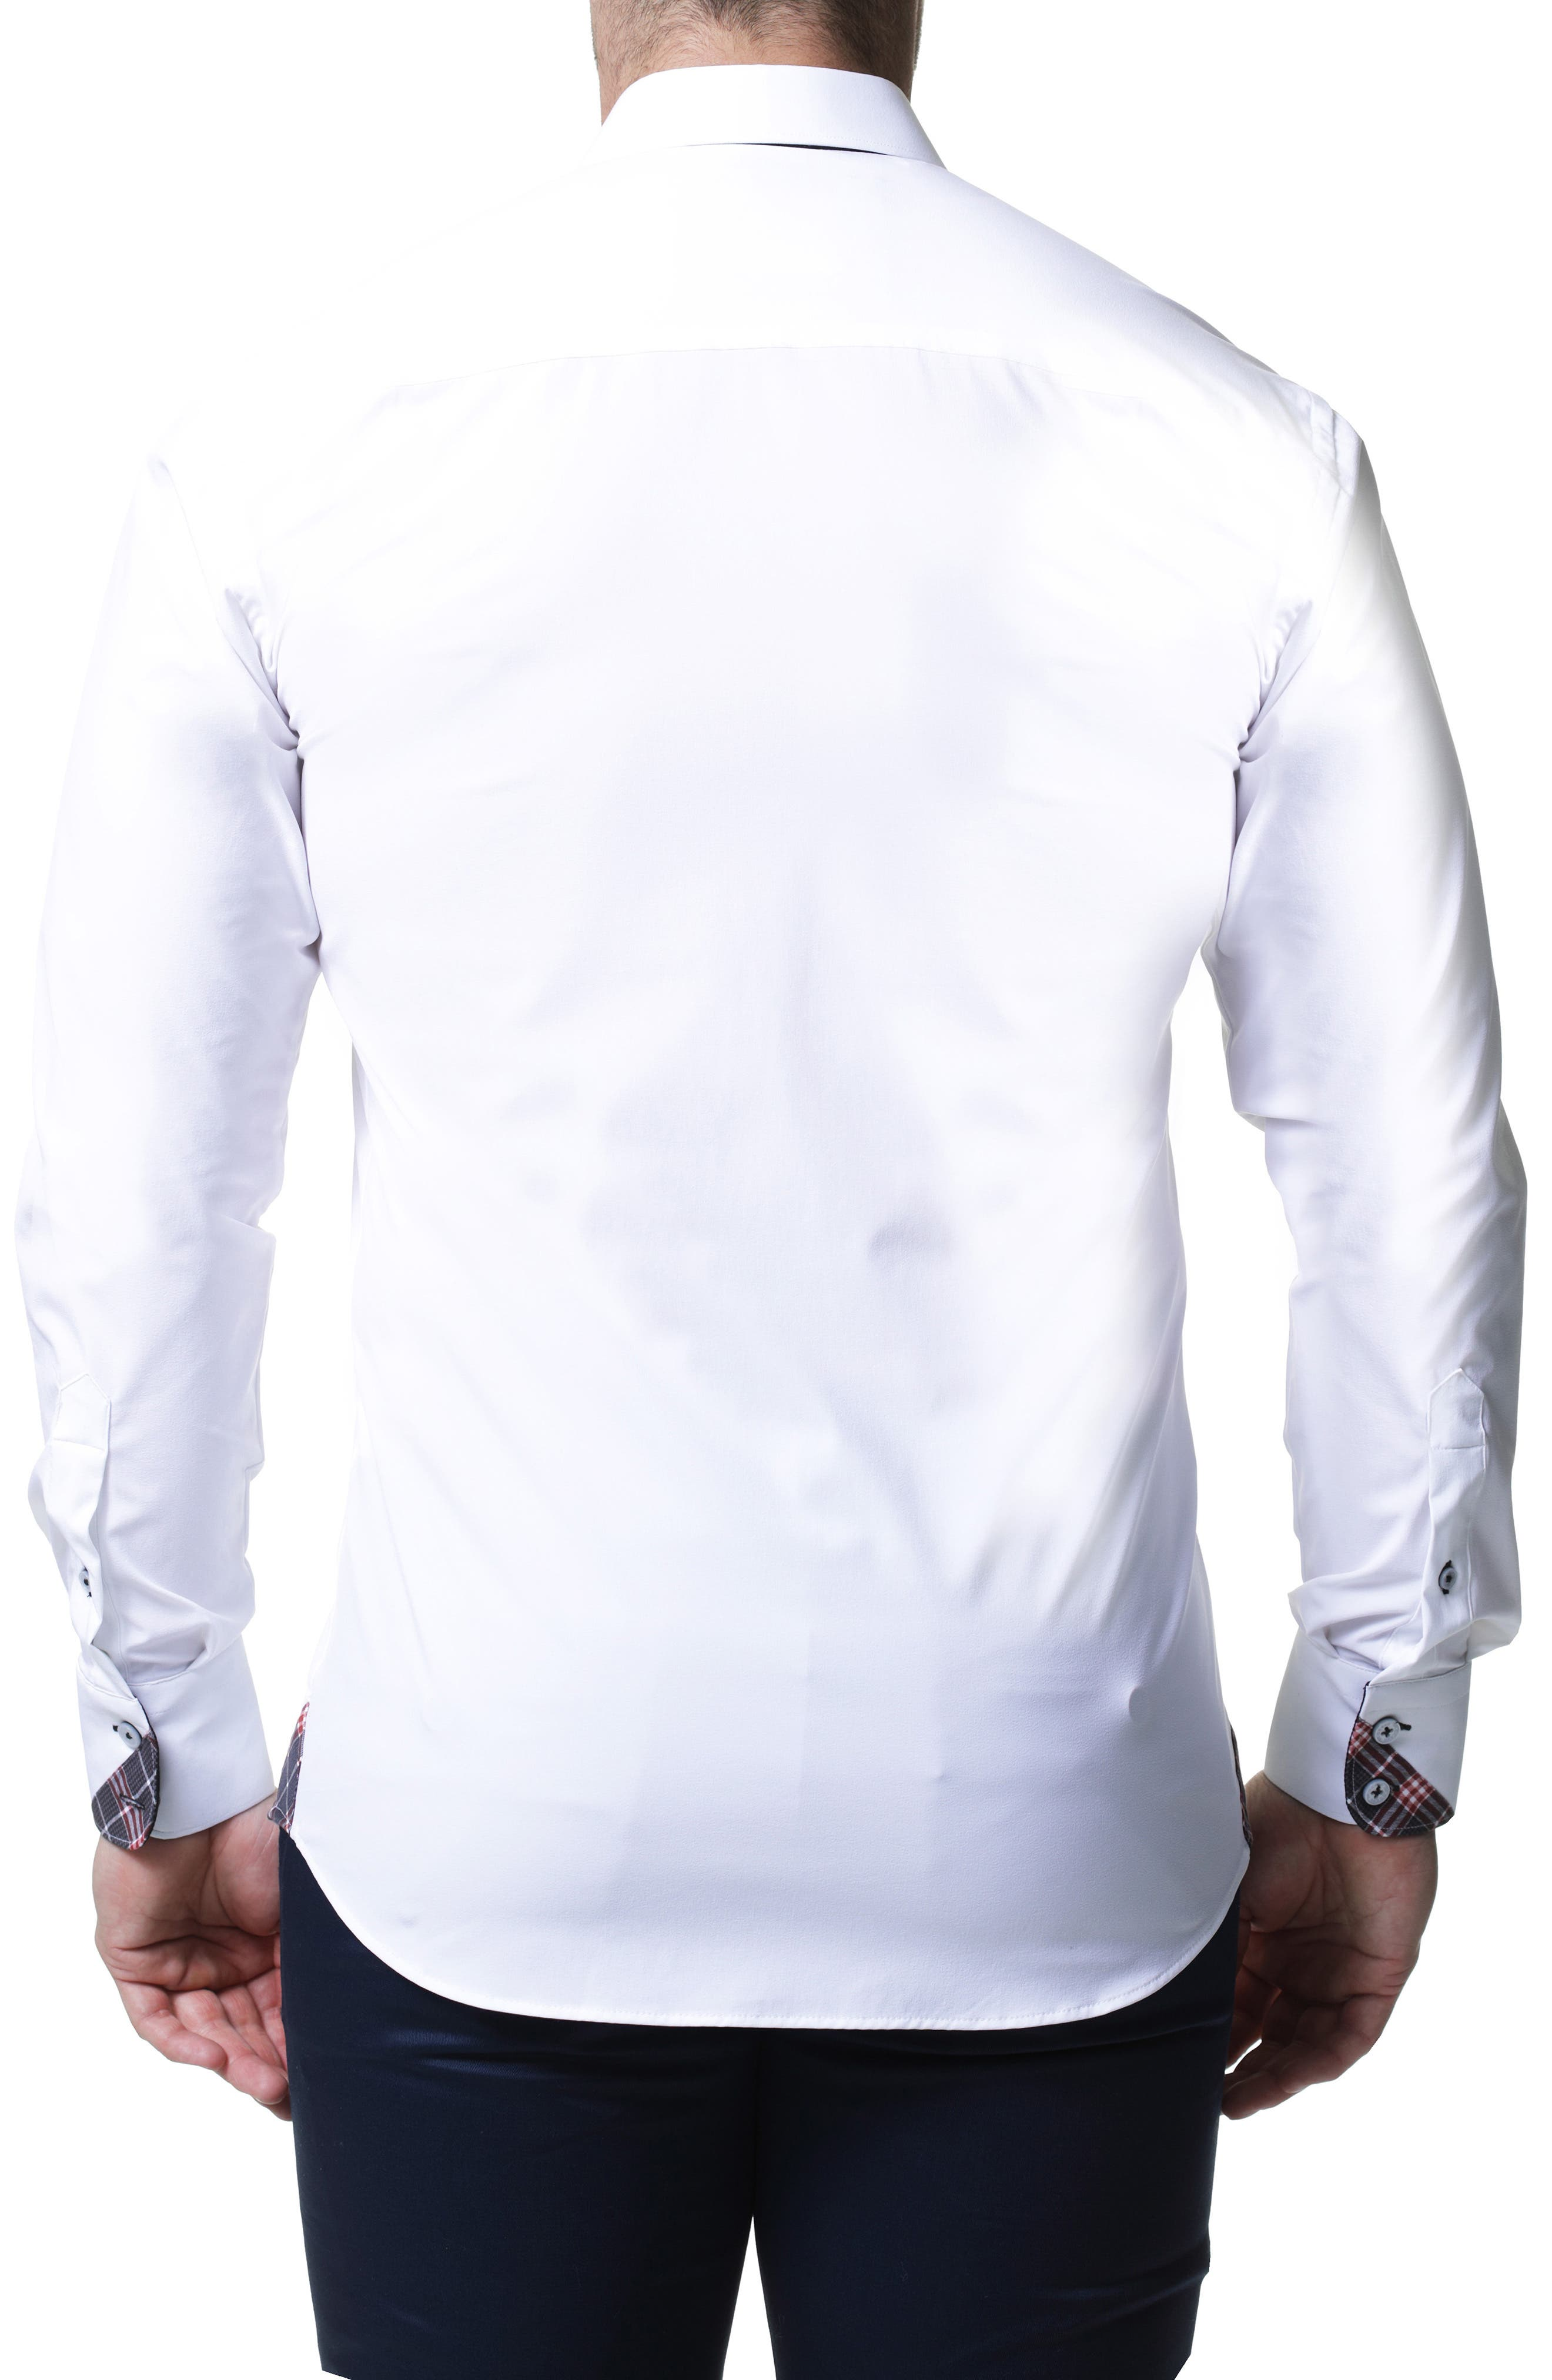 Wall Street 4-Way Stretch White Check Performance Sport Shirt,                             Alternate thumbnail 2, color,                             WHITE